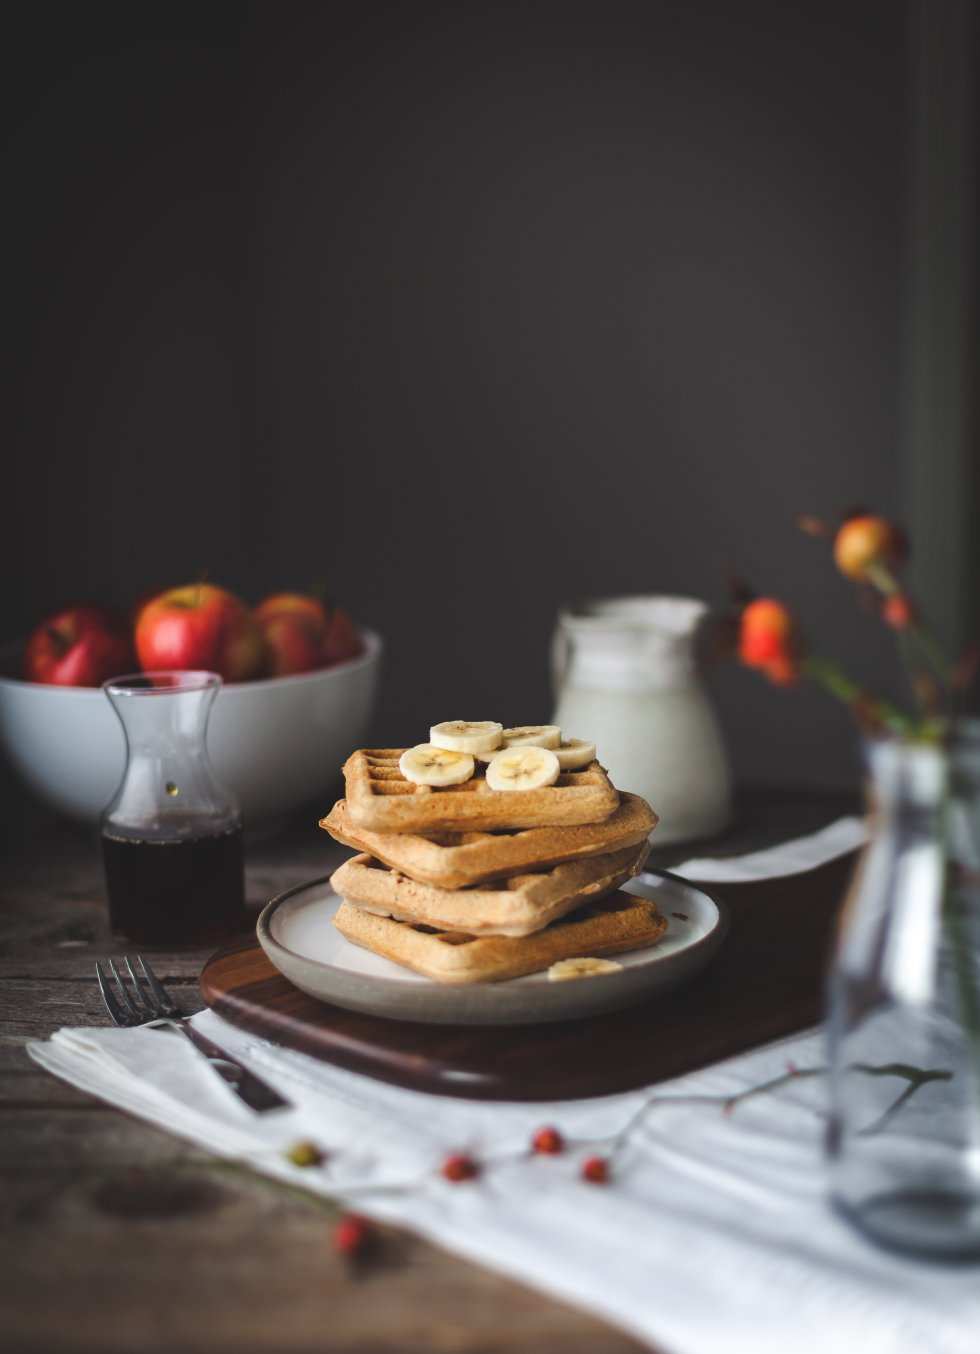 a stack of waffles with maple syrup sitting next to it and a bowl of apples in the background.